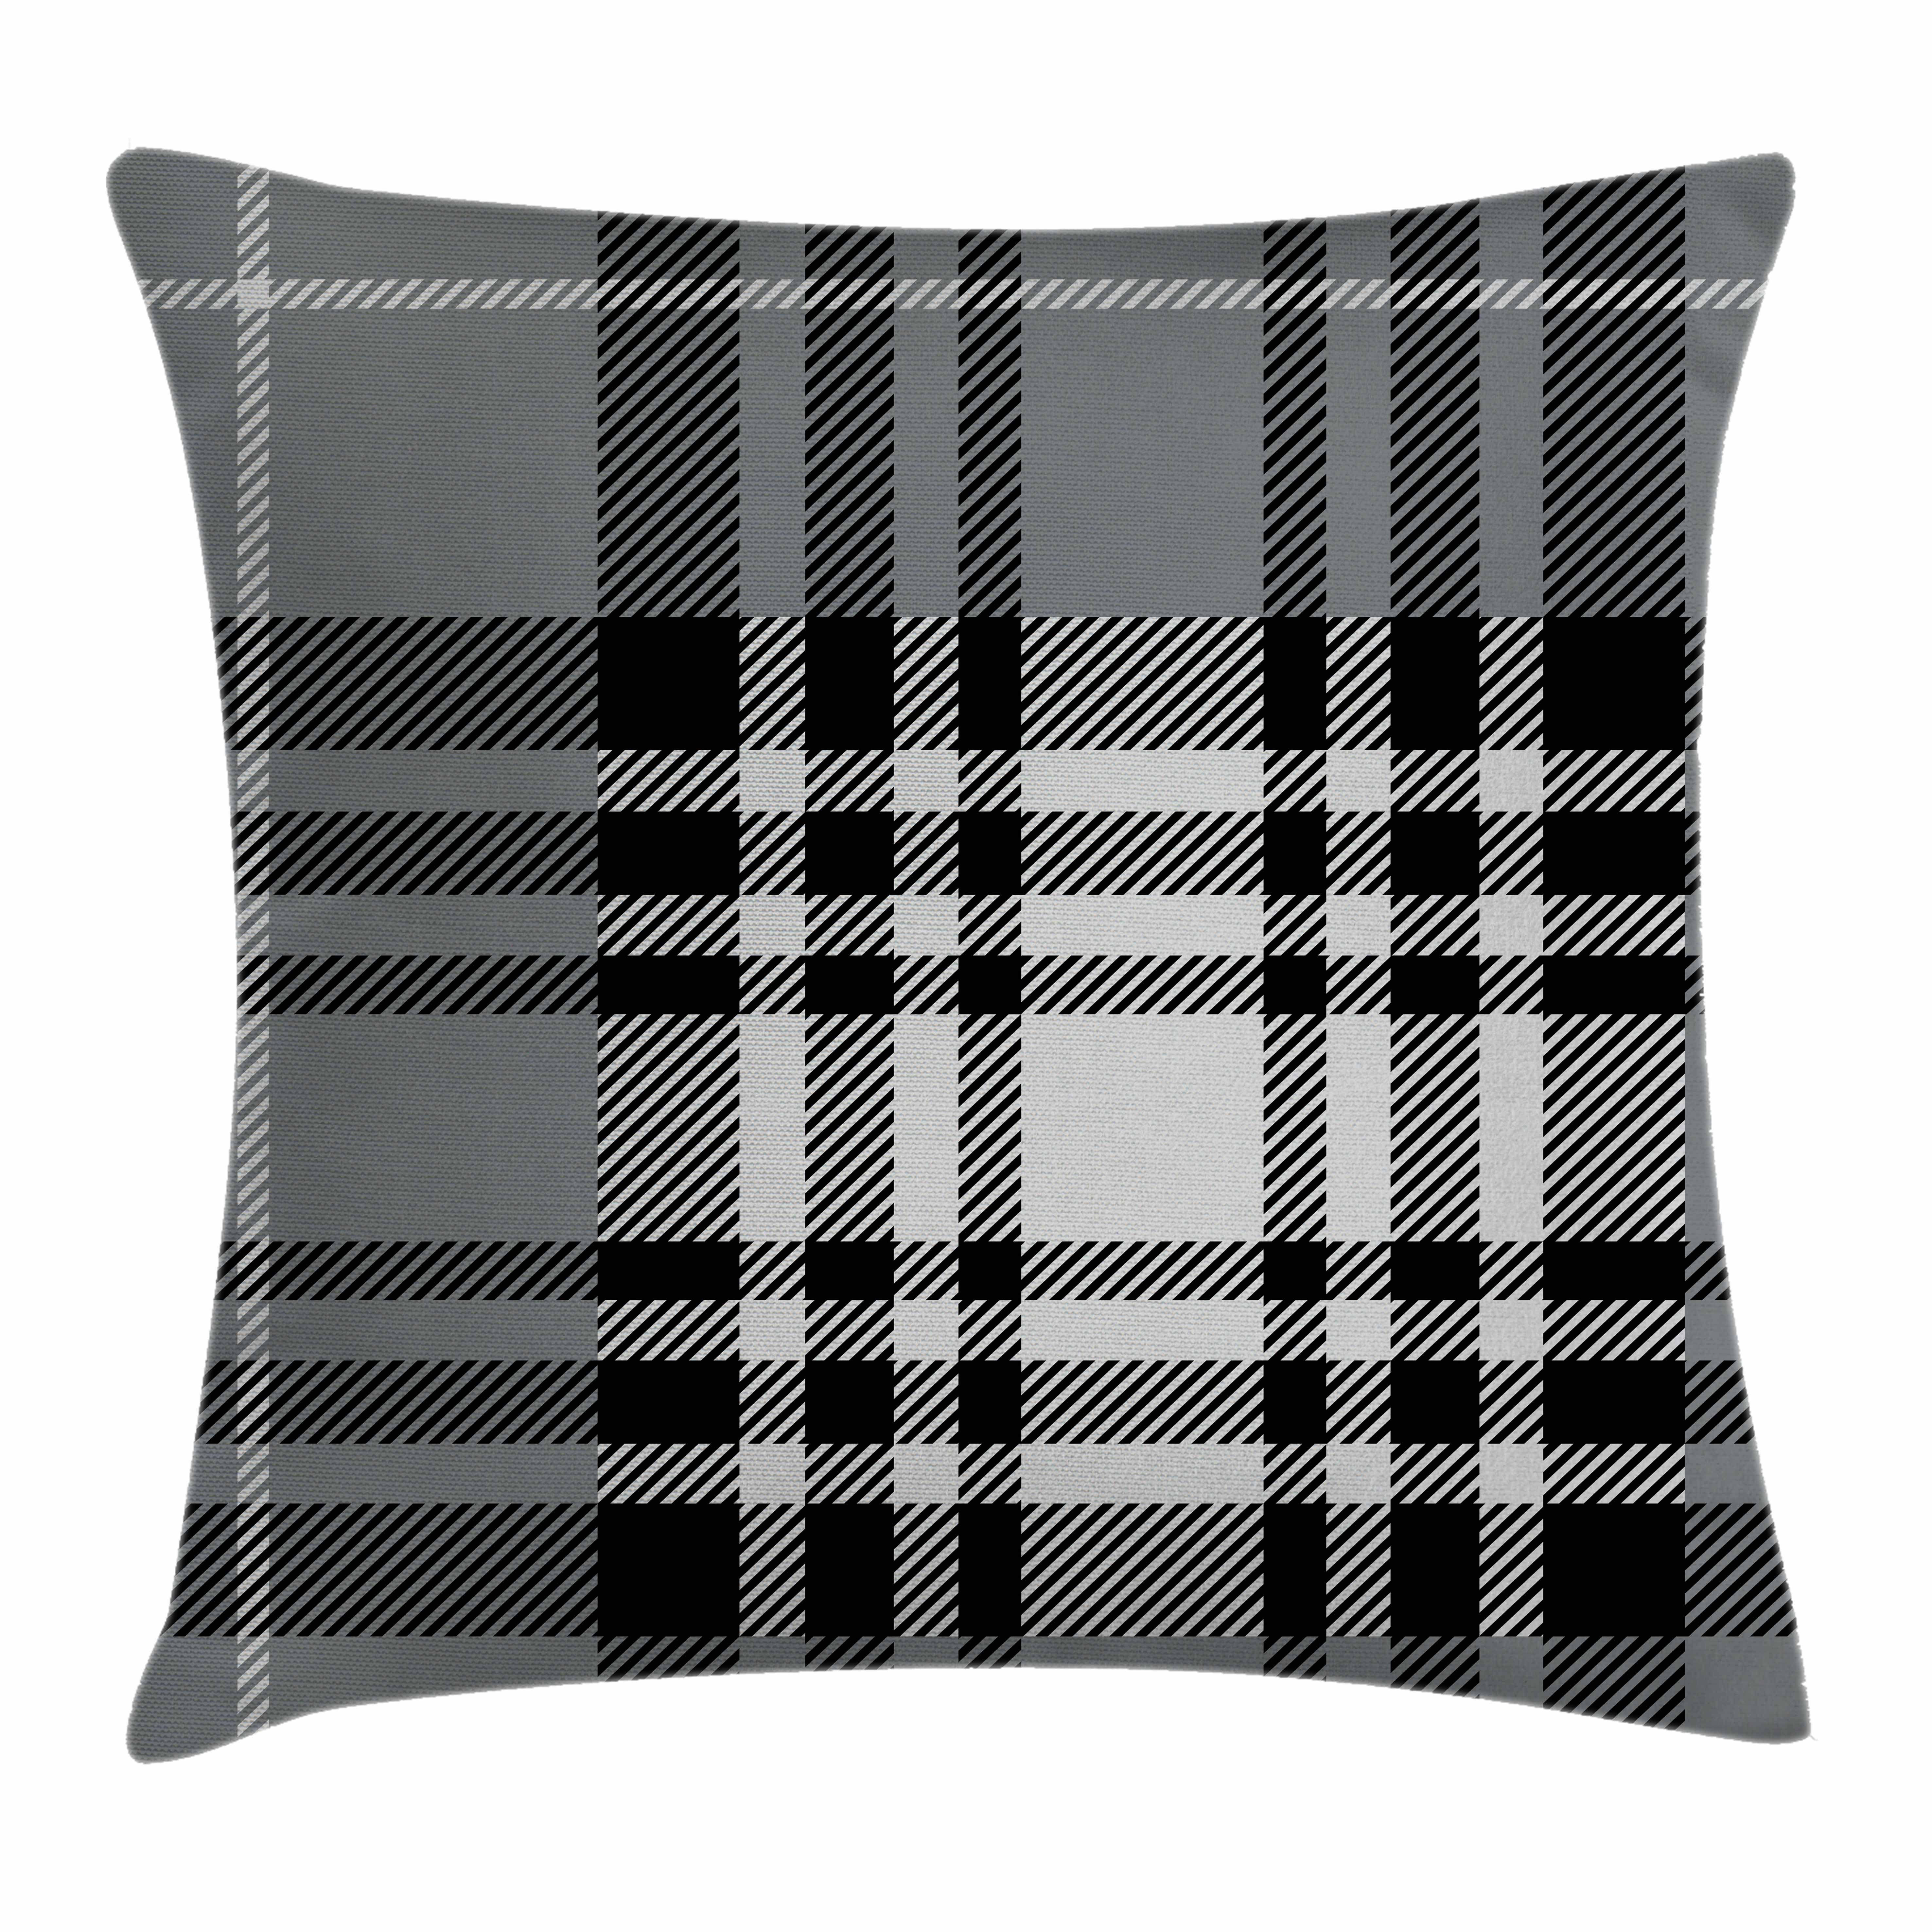 Checkered Throw Pillow Cushion Cover, Old Fashioned Plaid Tartan in Dark Colors Classic English Tile Symmetrical, Decorative Square Accent Pillow Case, 16 X 16 Inches, Grey Black White, by Ambesonne